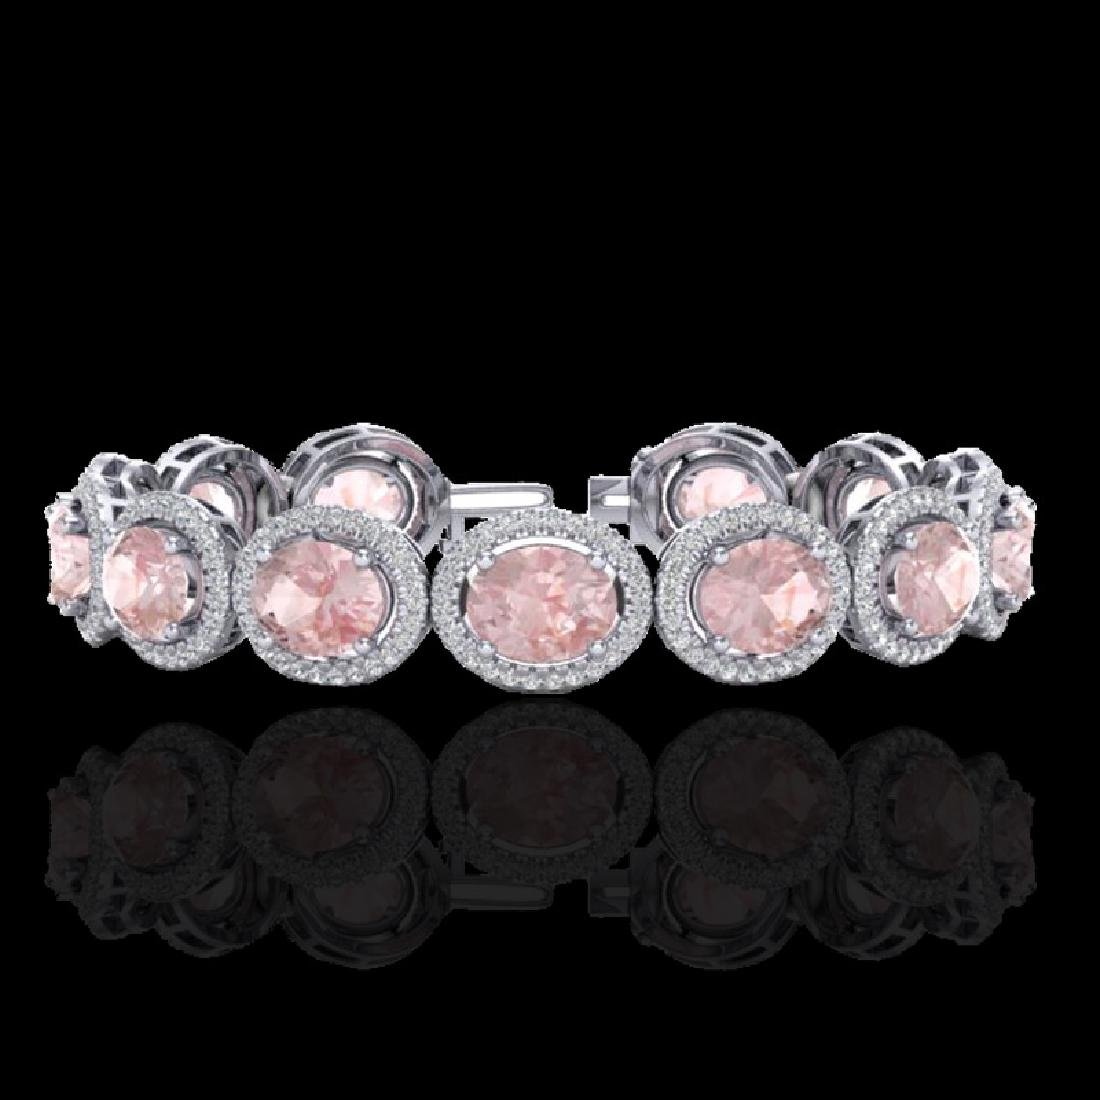 23 CTW Morganite & Micro Pave VS/SI Diamond Bracelet